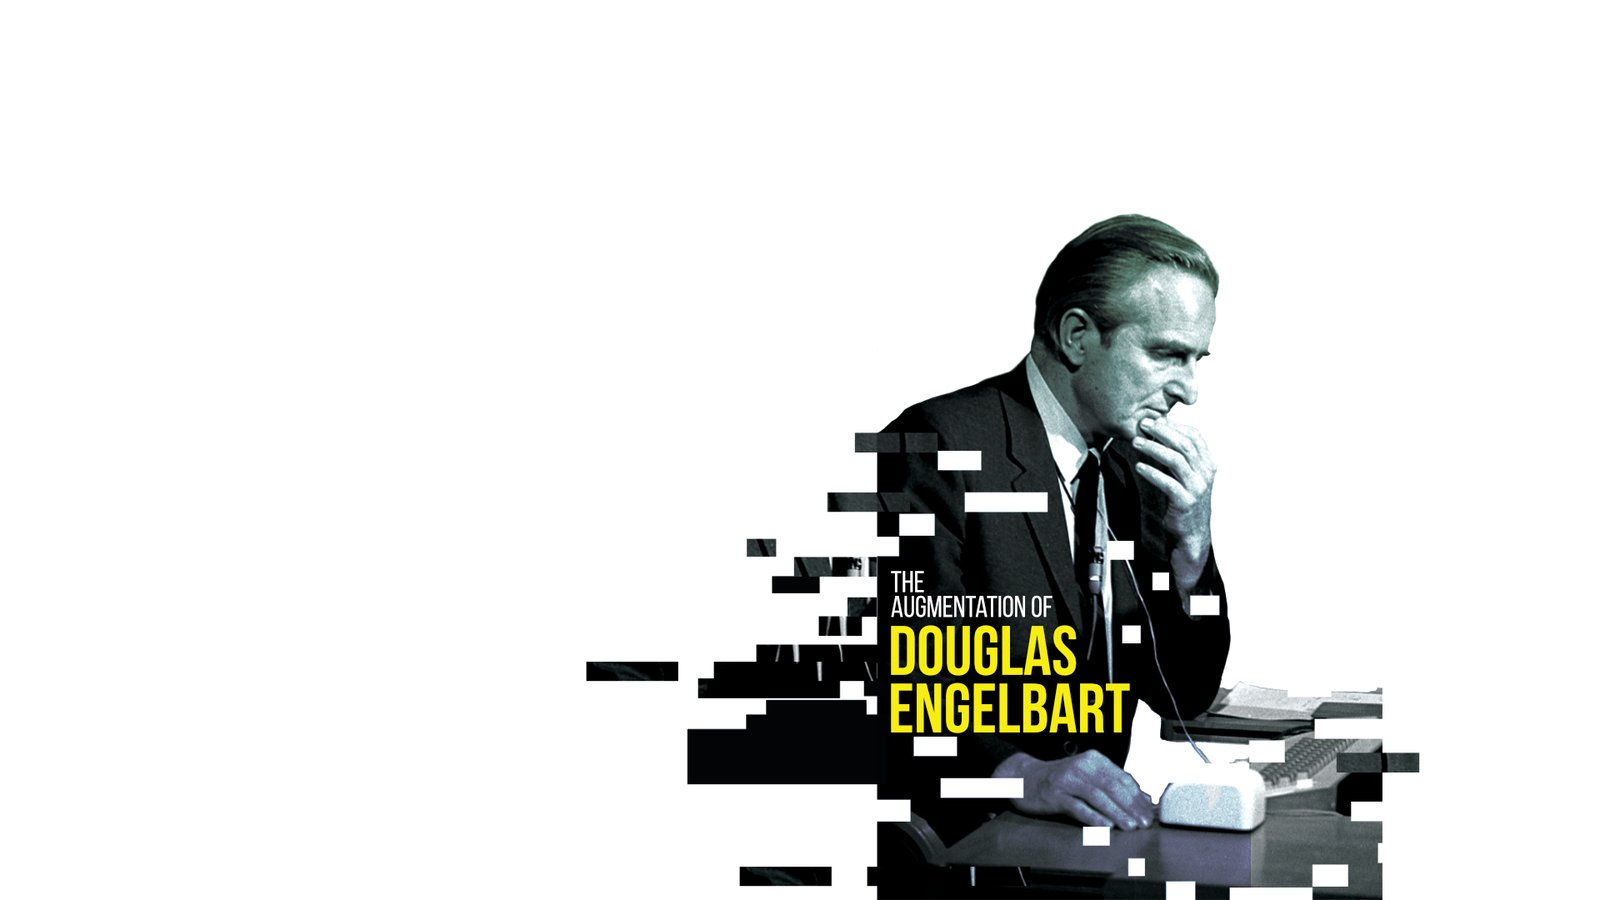 The Augmentation of Douglas Engelbart